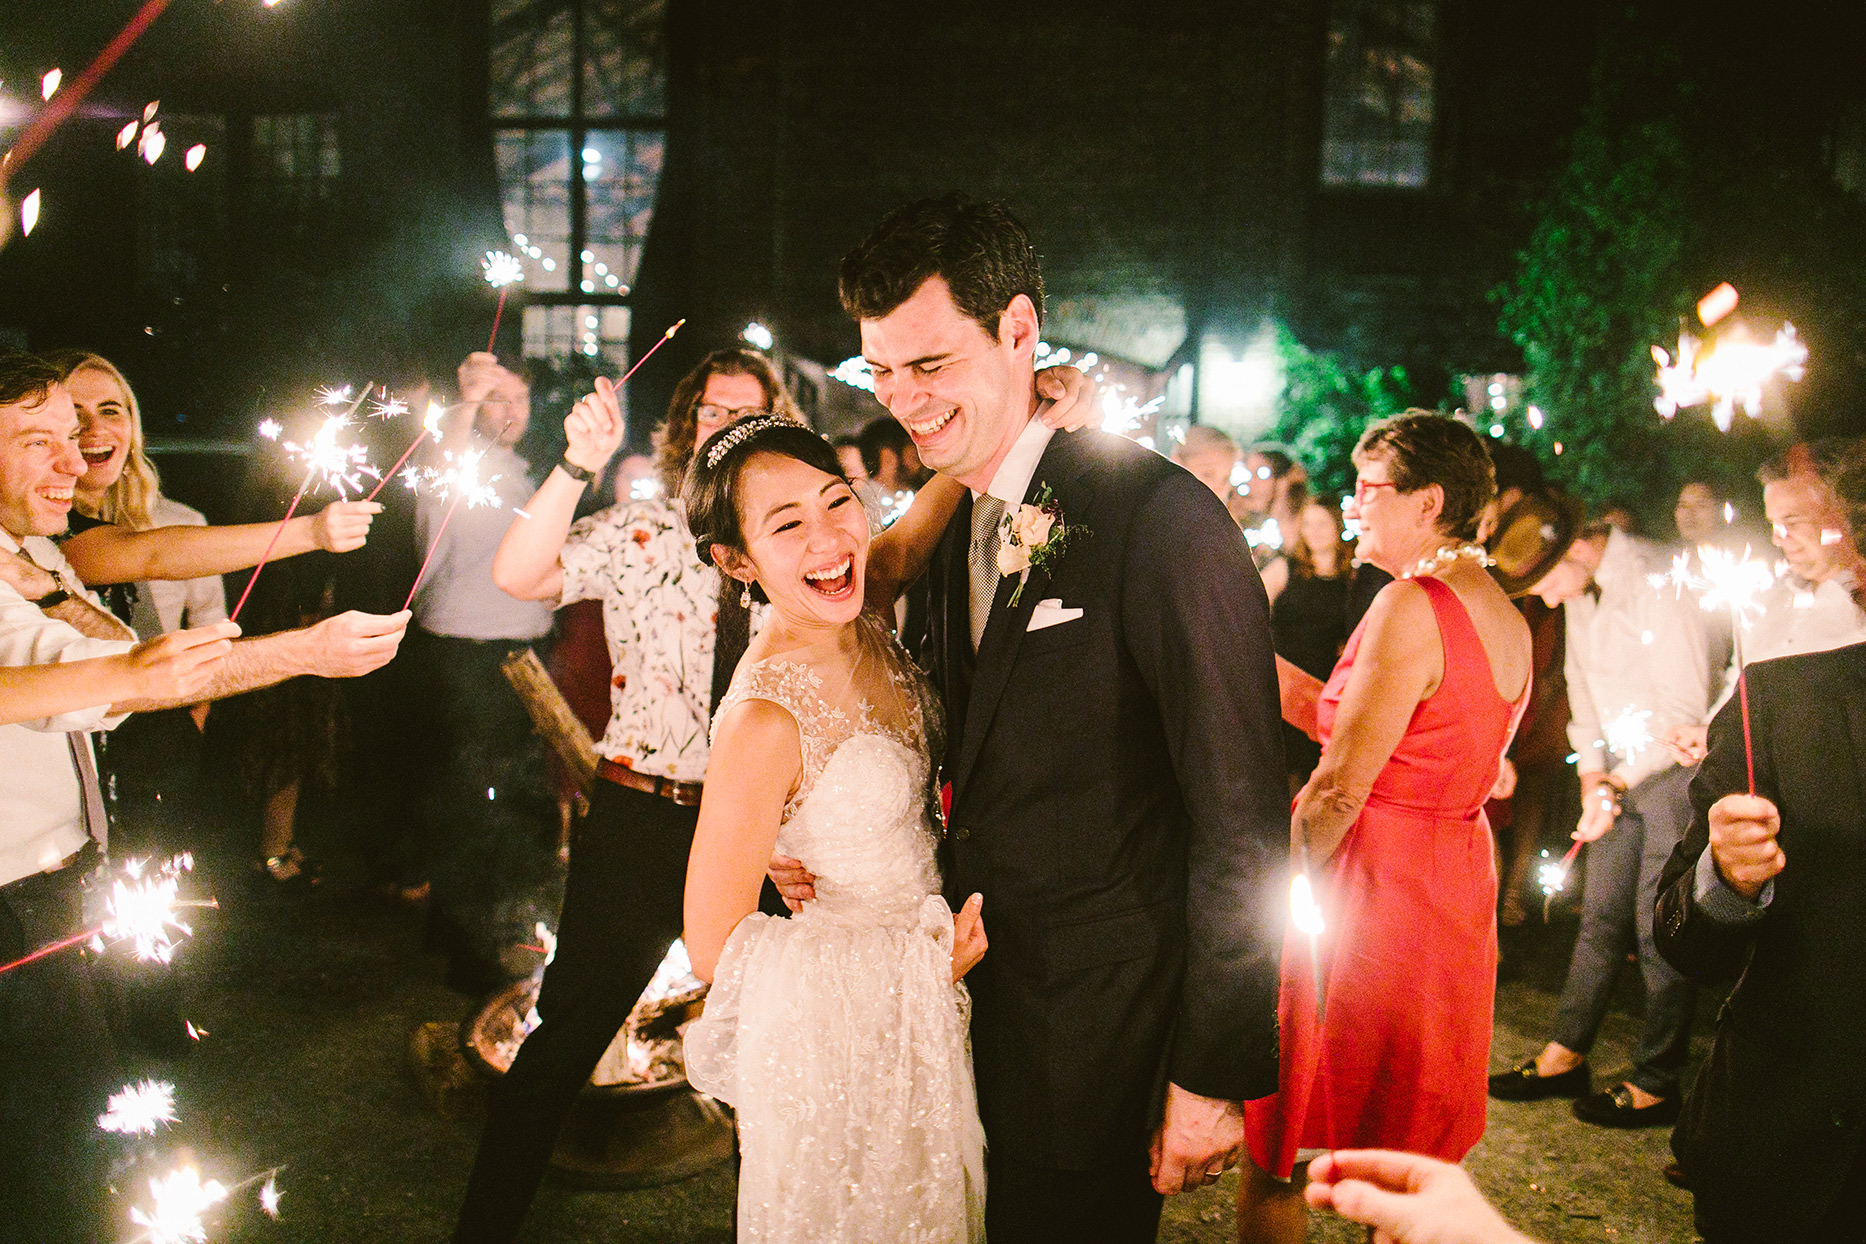 wedding couple laughing while guests hold sparklers around them